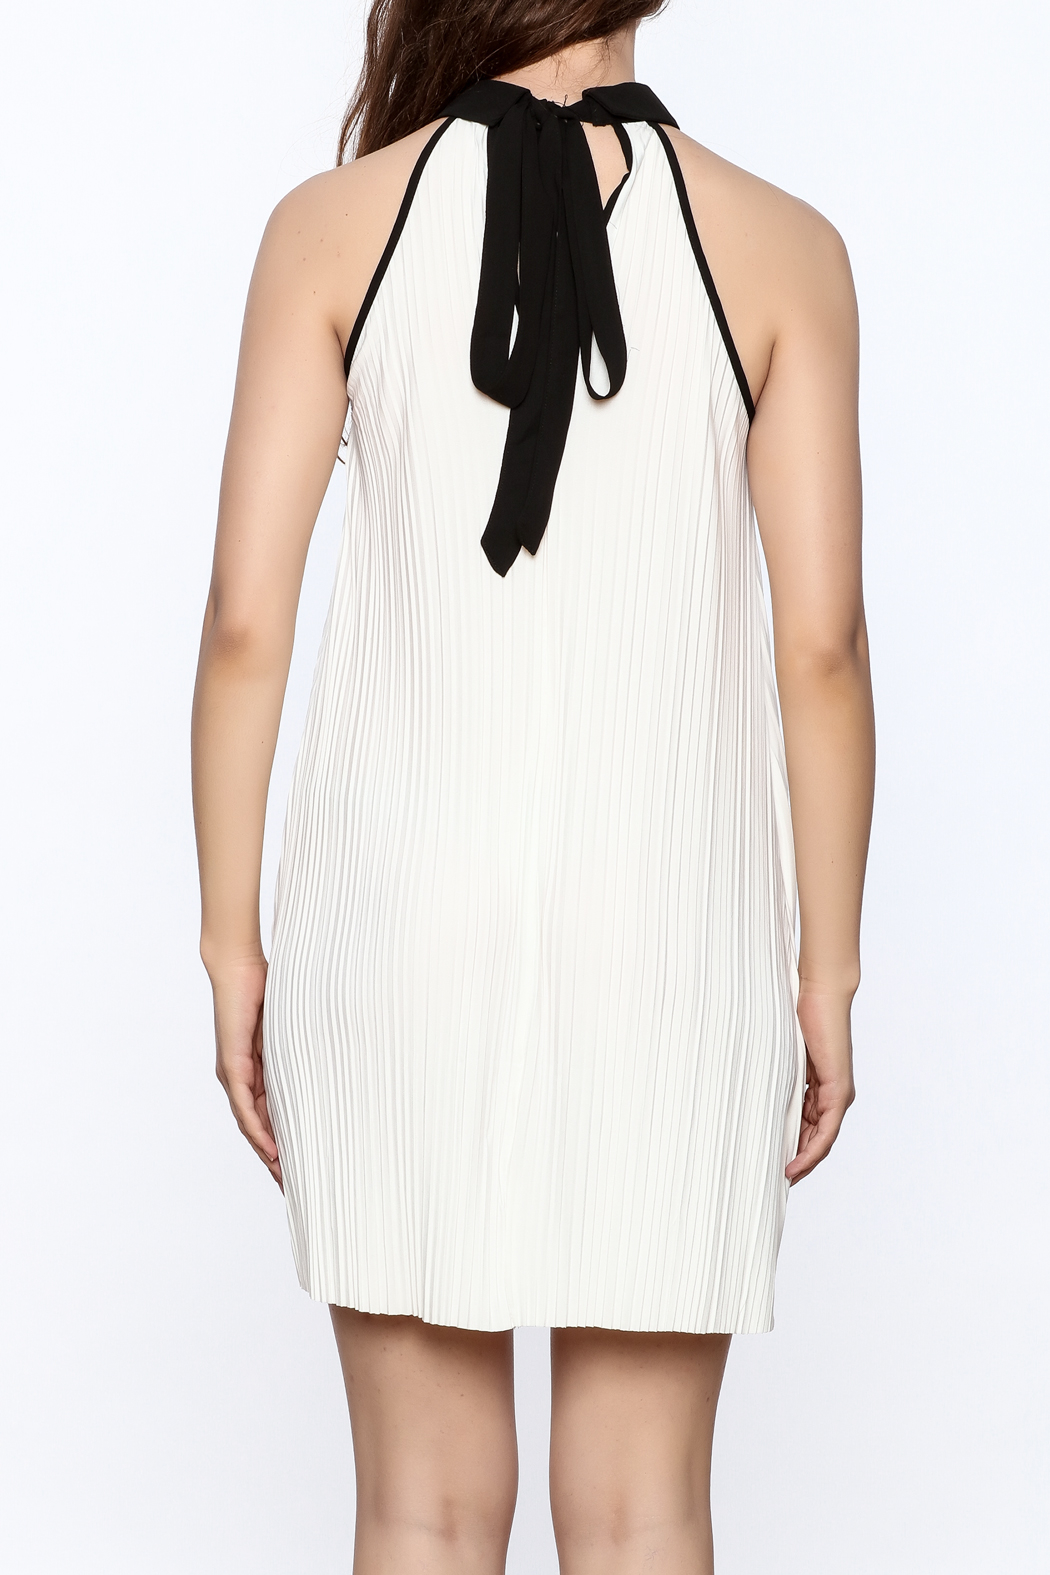 Very J Pleated Halter Dress - Back Cropped Image